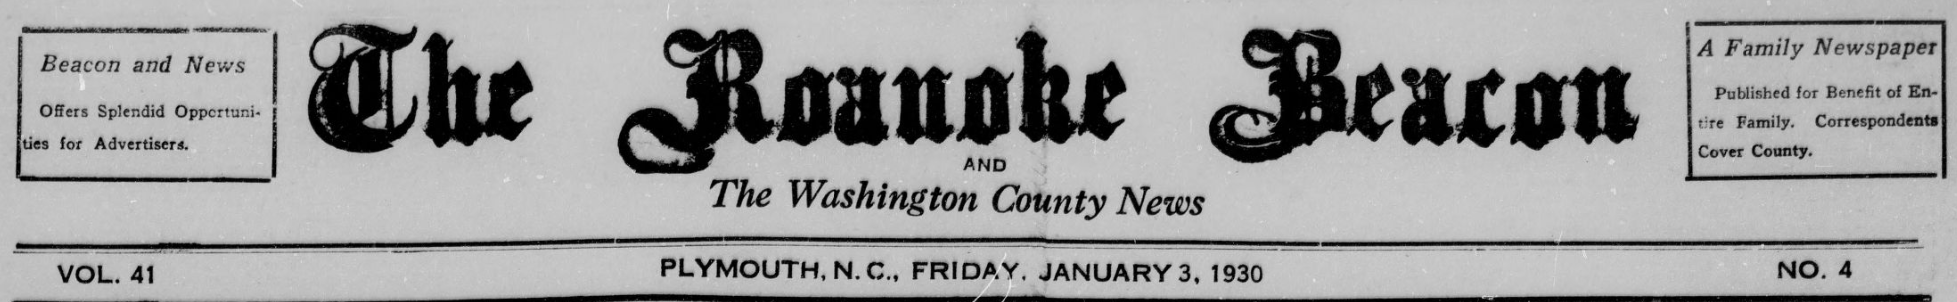 Title heading for the Roanoke Beacon January 3, 1930 issue.